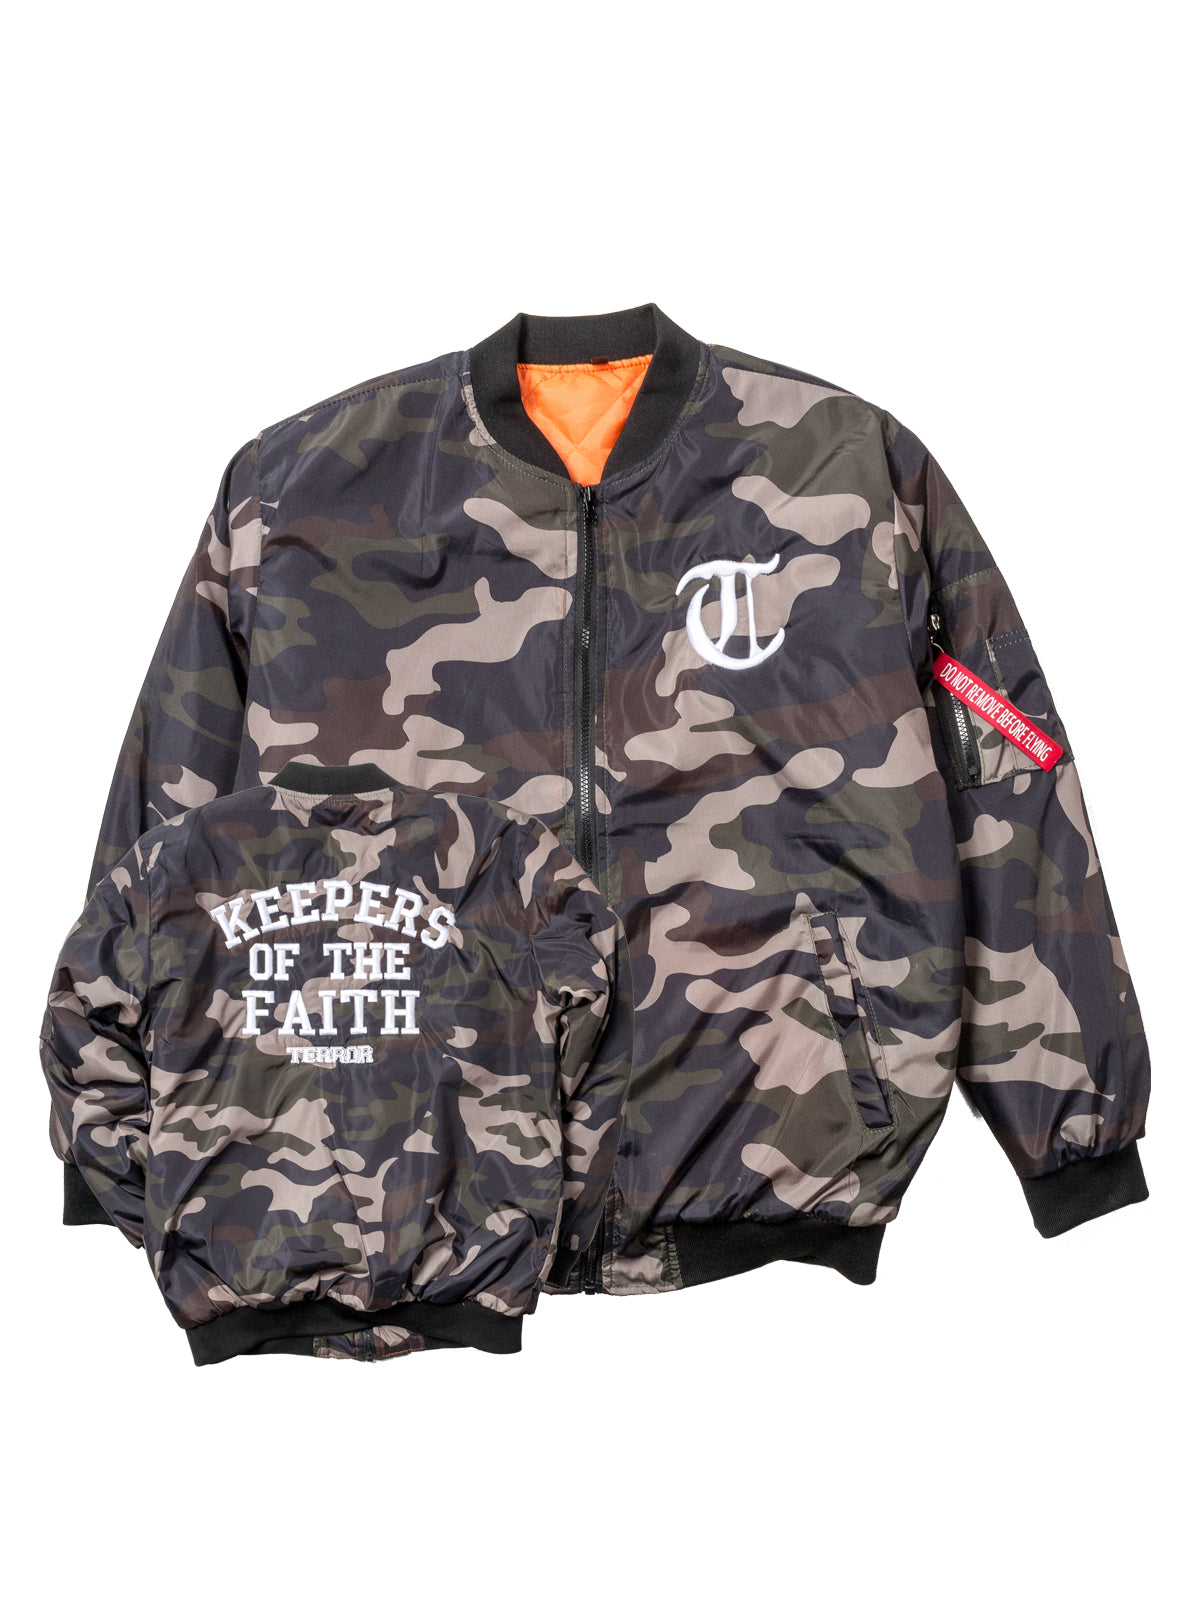 Terror - KOTF Camo Bomber Jacket - Merch Limited